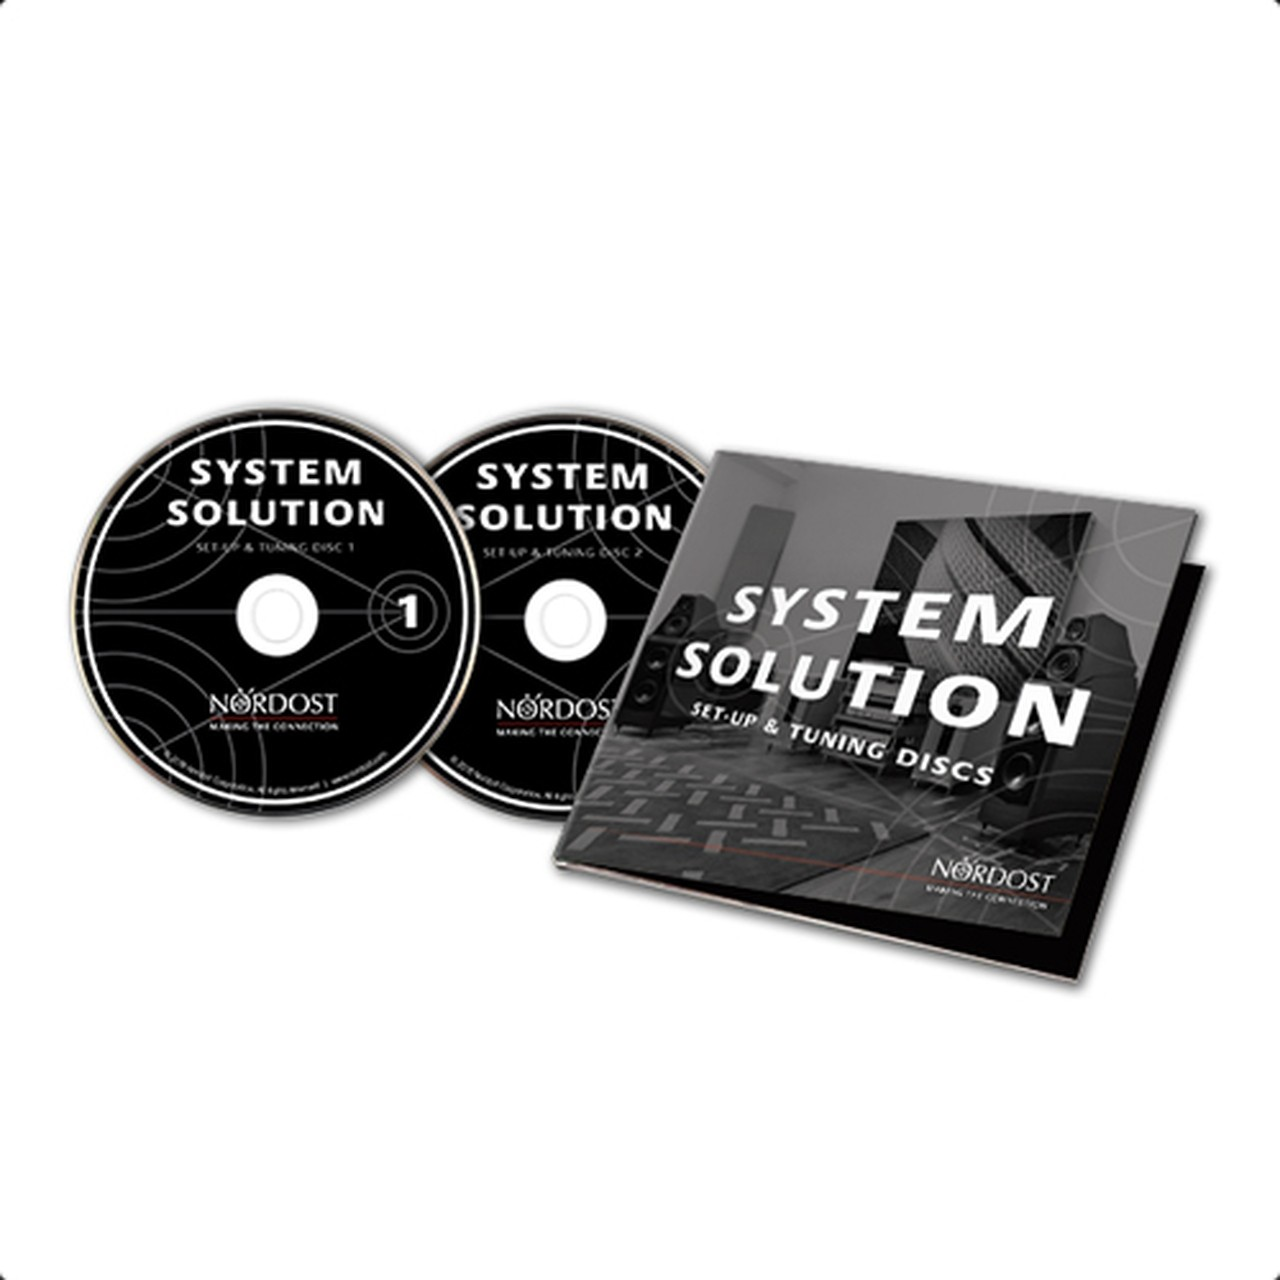 Nordost - System Set-Up & Tuning Disc 2CD